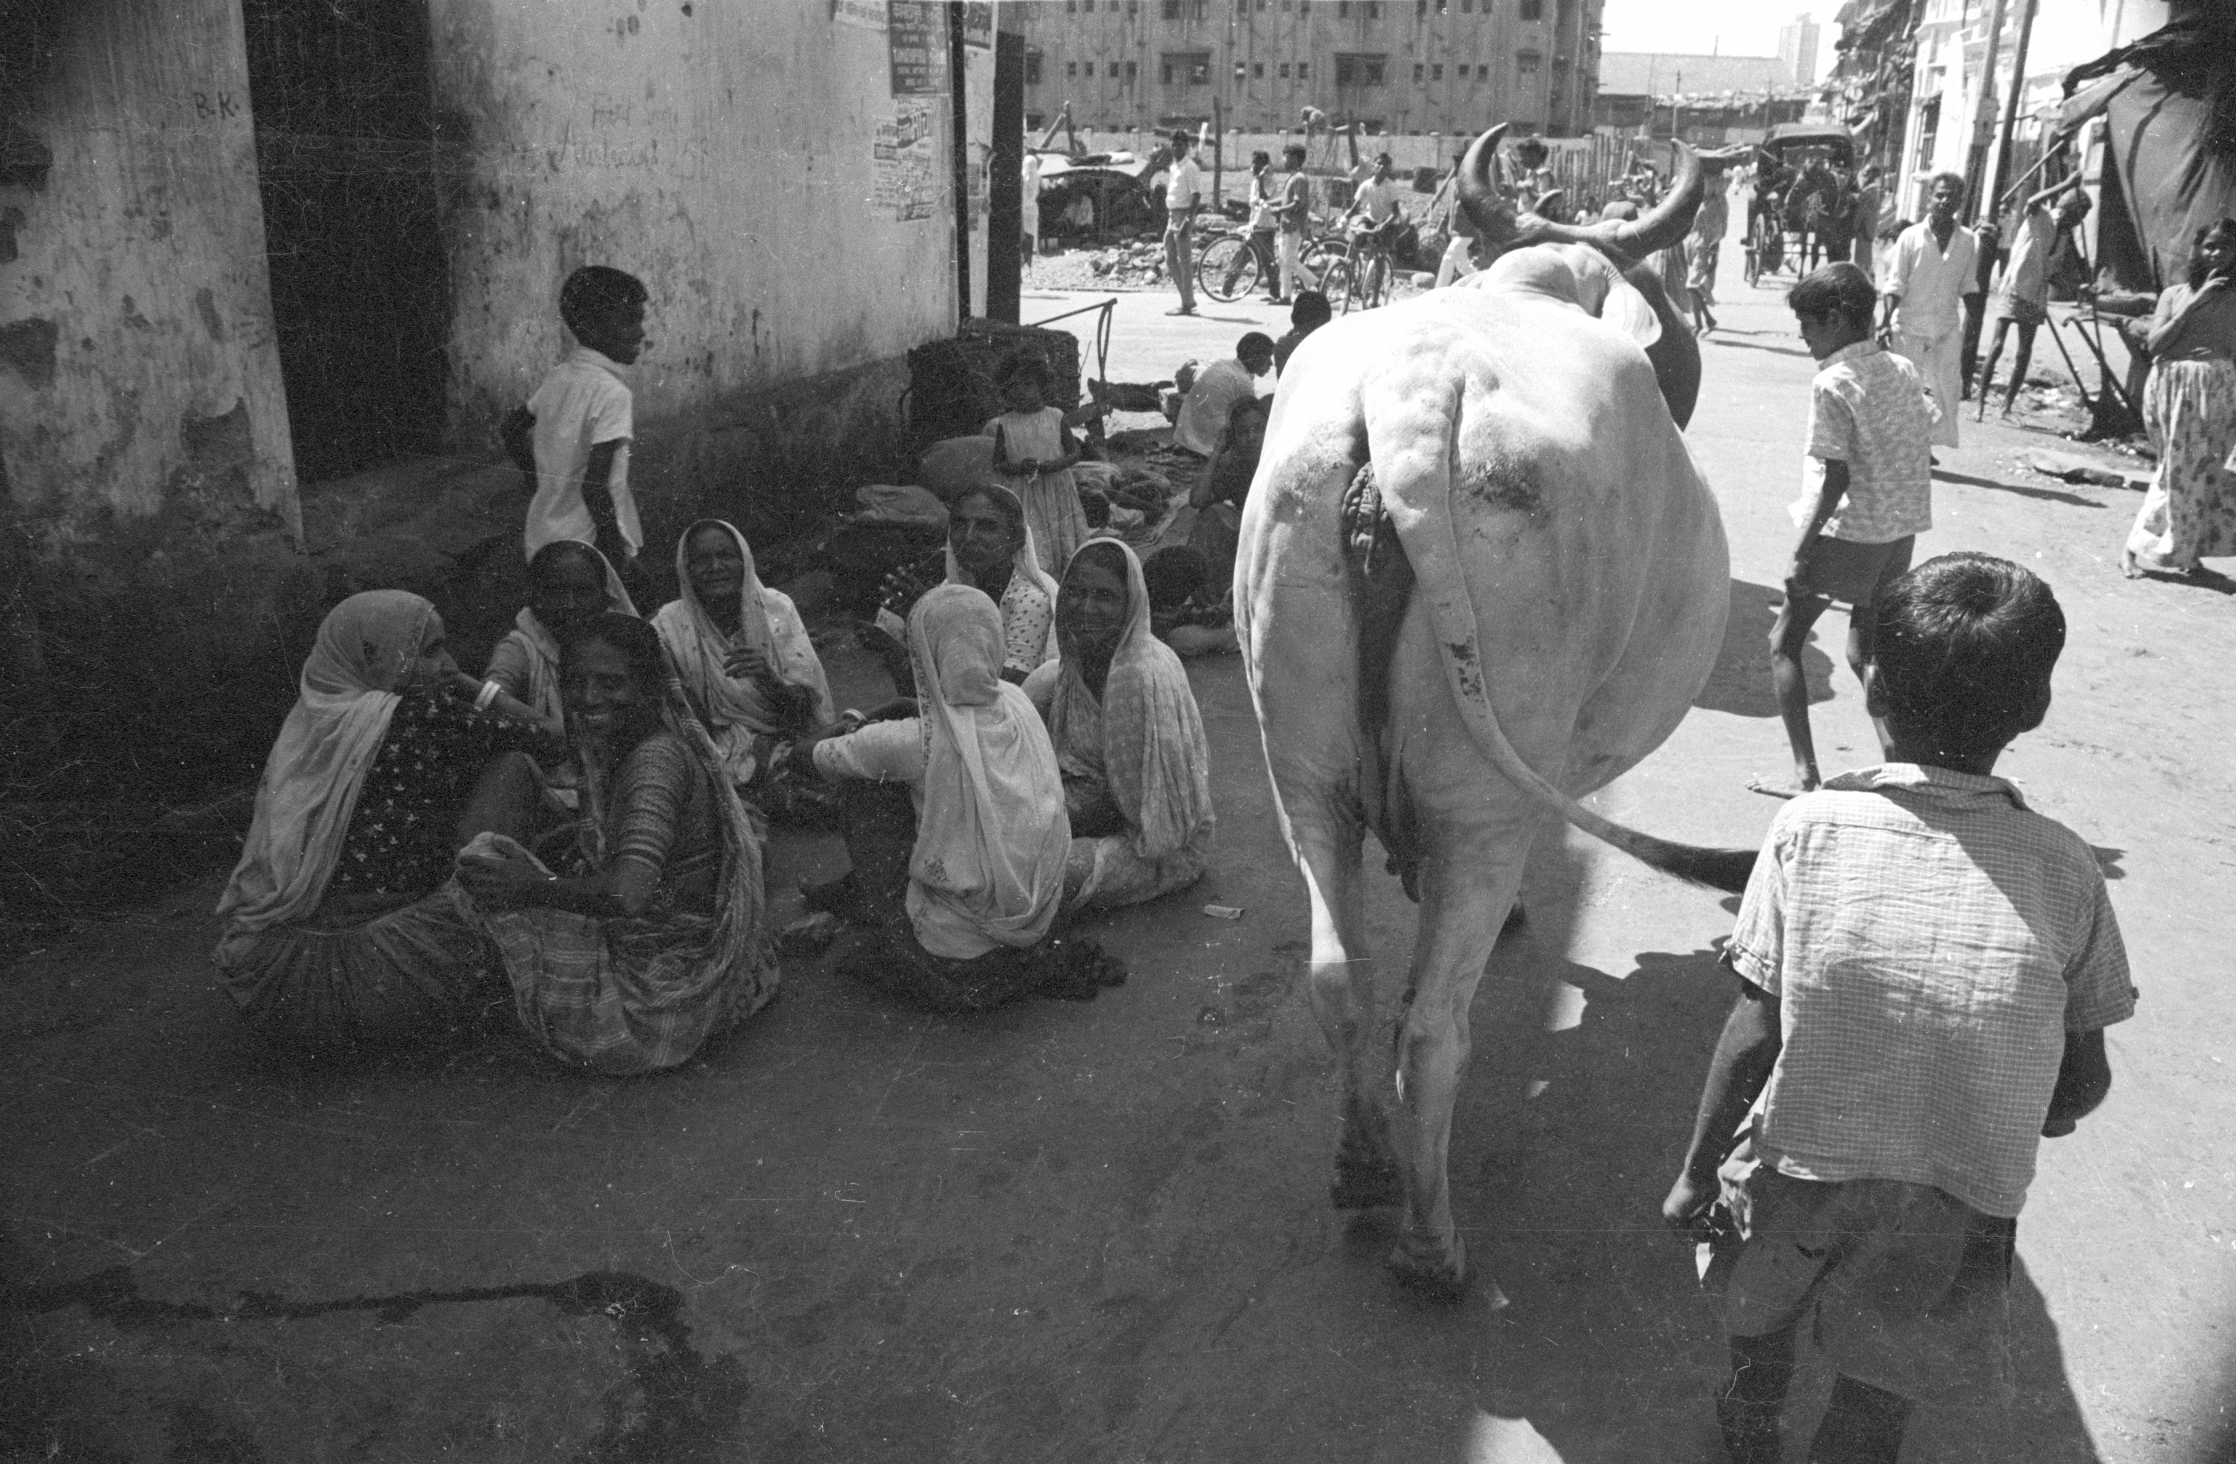 india 1970 - cow - people in bombay